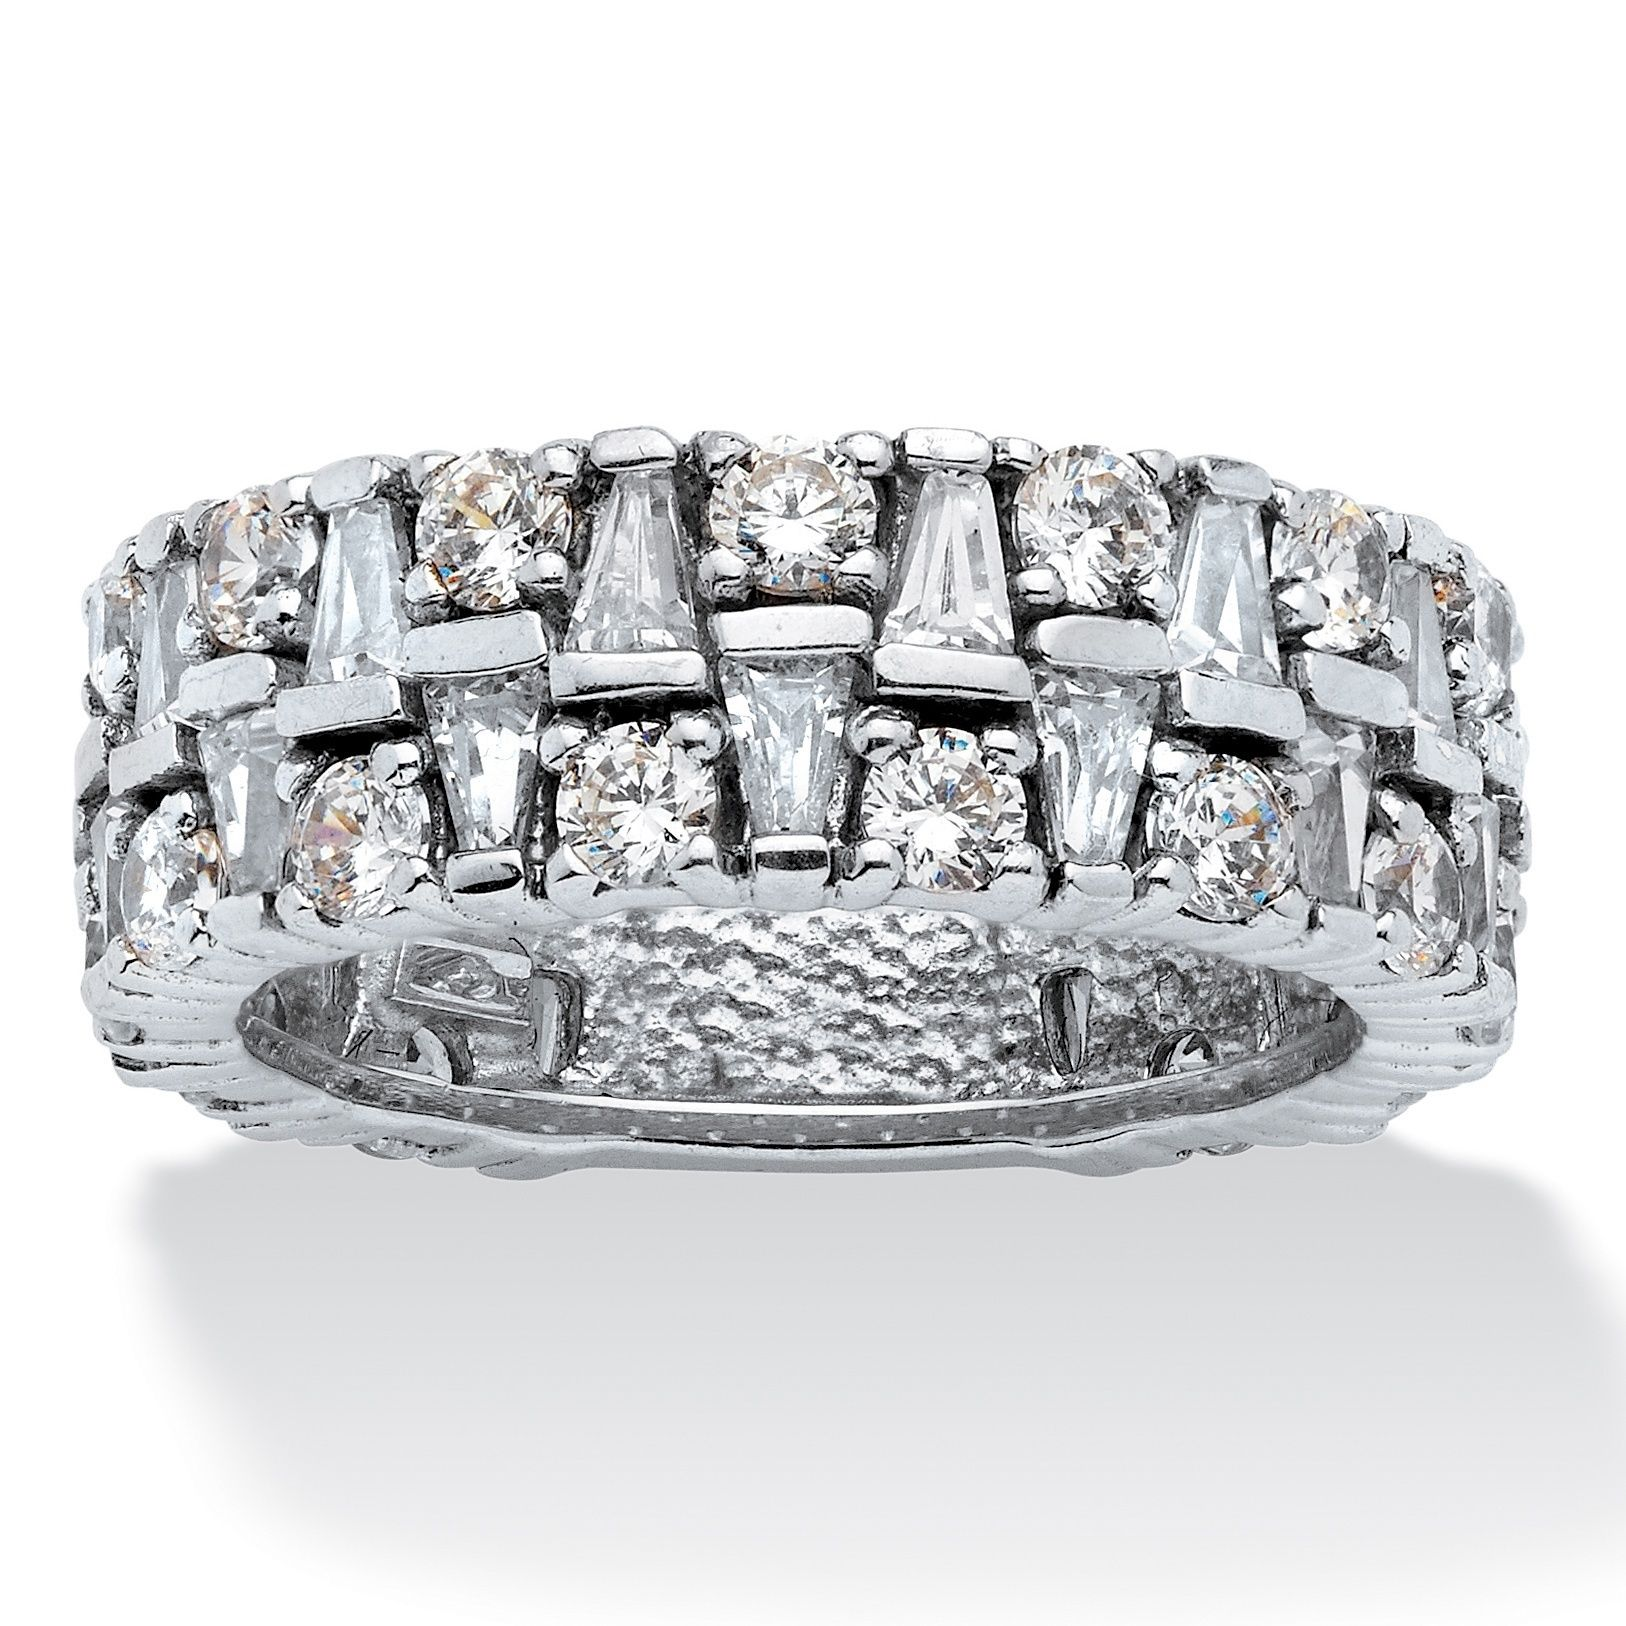 platinum sterling palmbeach over products jewelry cubic in silver detail zirconia cfm cut band eternity bands at tcw emerald